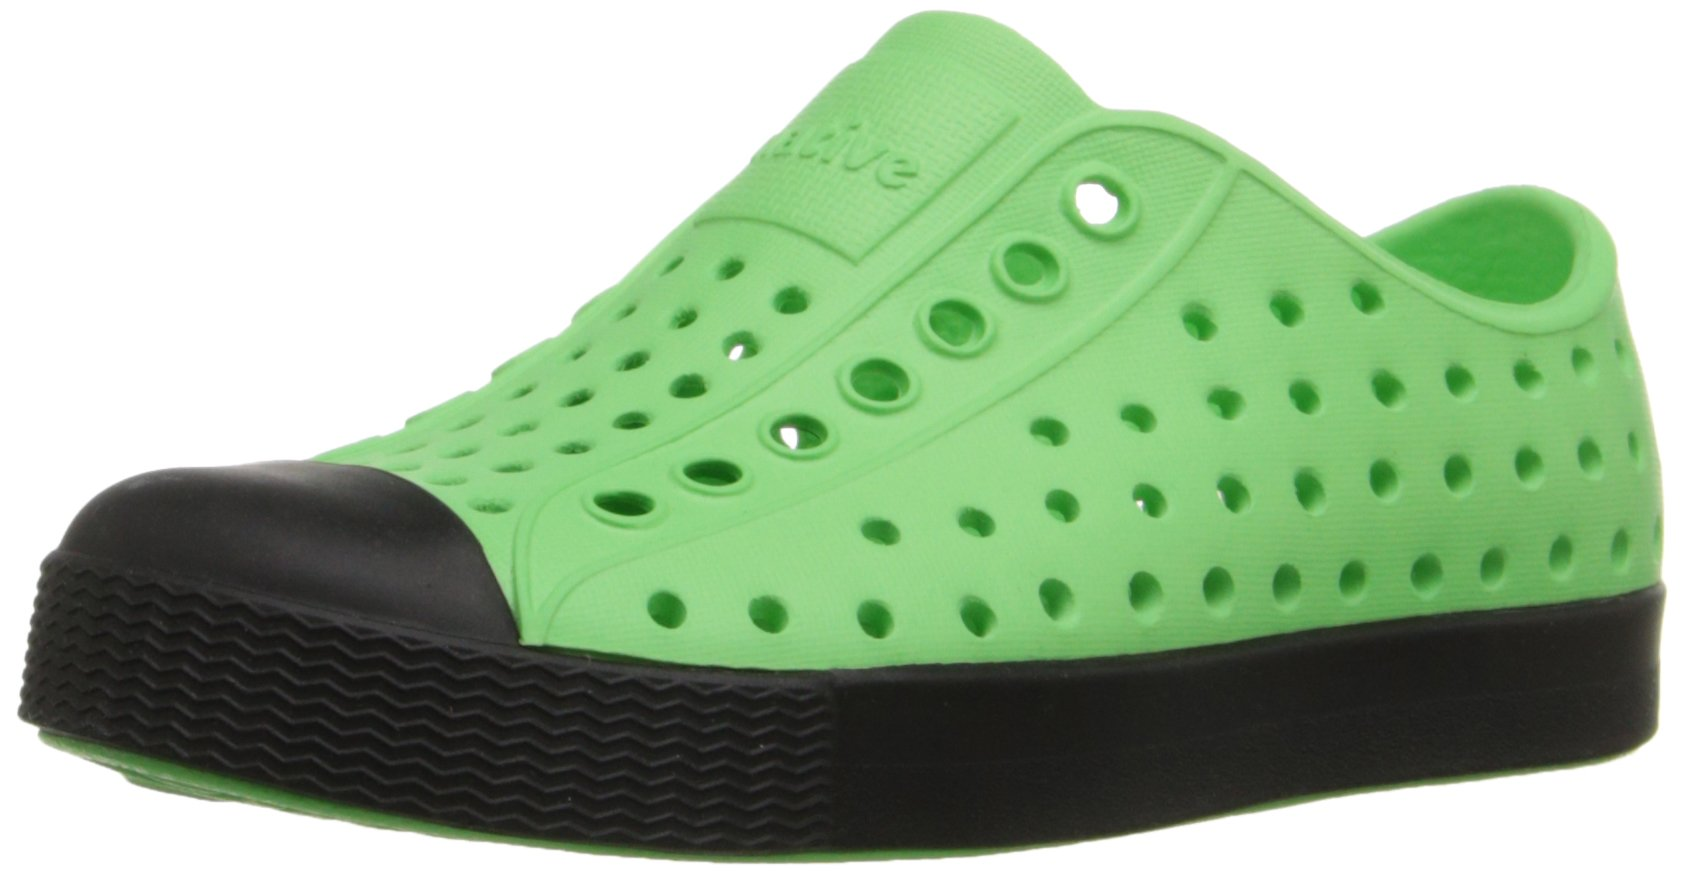 Native Jefferson Slip-On Sneaker,Mescal Green/Jiffy Black,4 M US Toddler